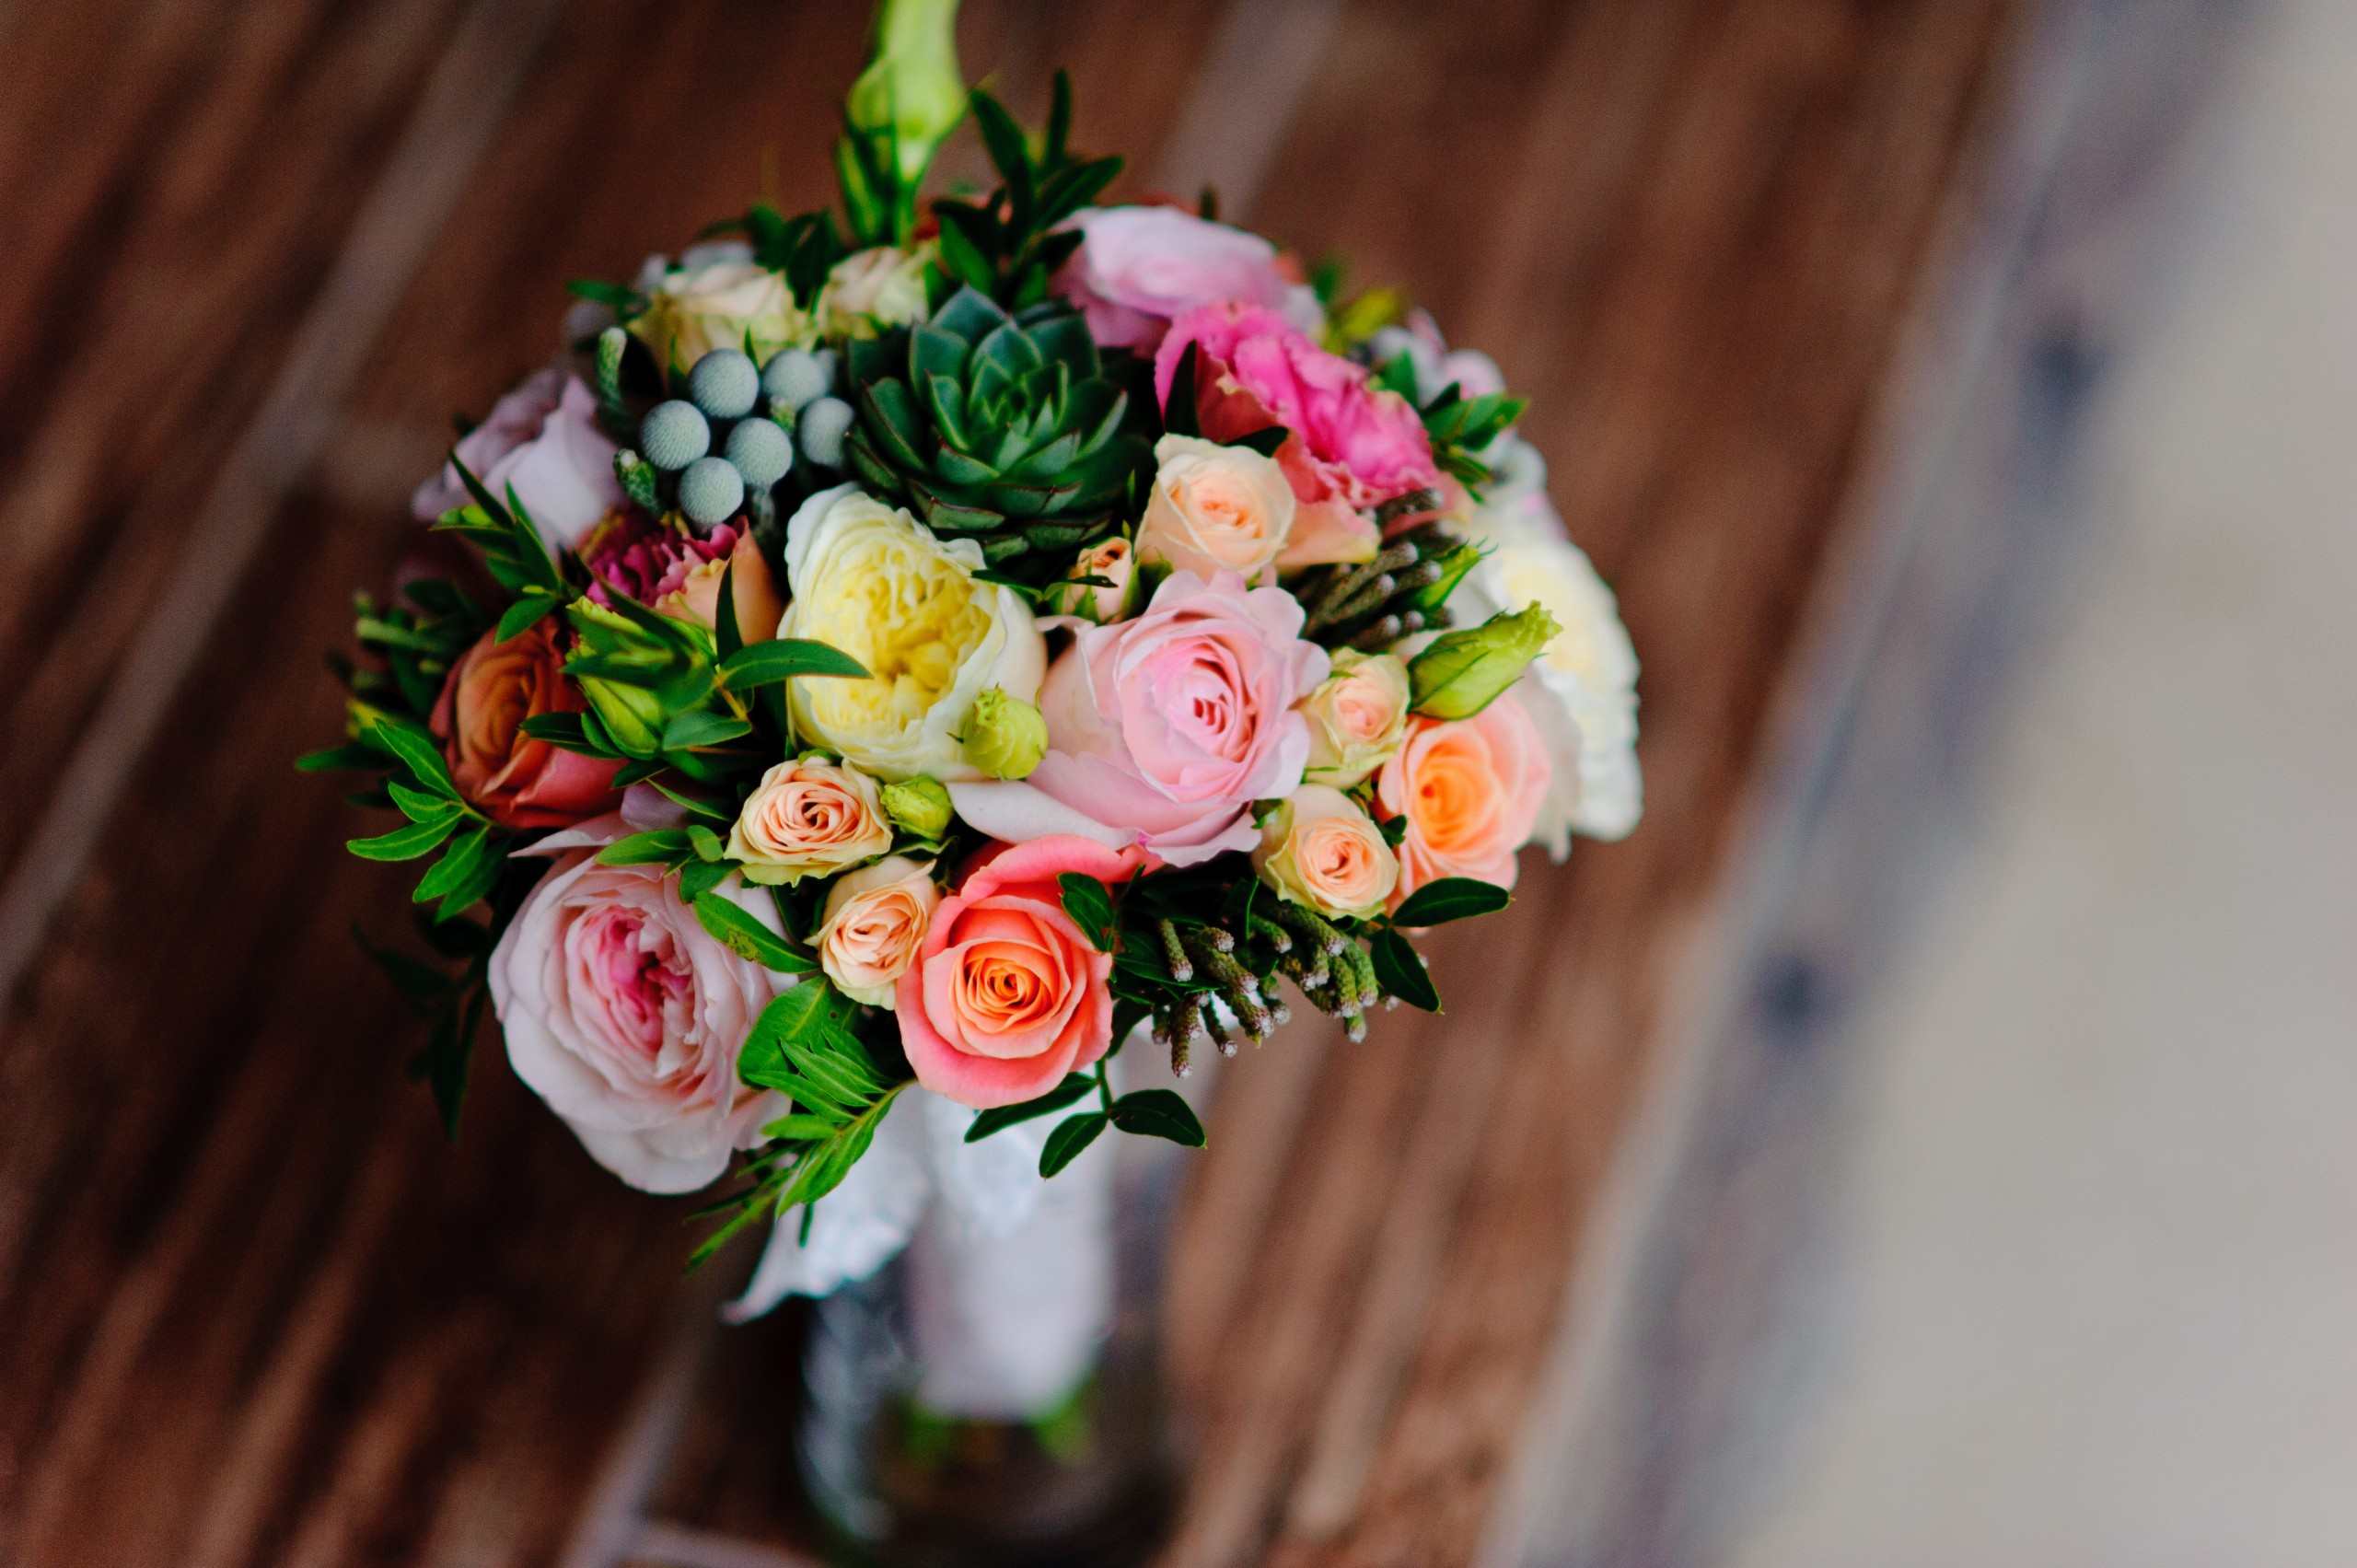 Flower bouquet in vase on table with pink, yellow, and orange roses.